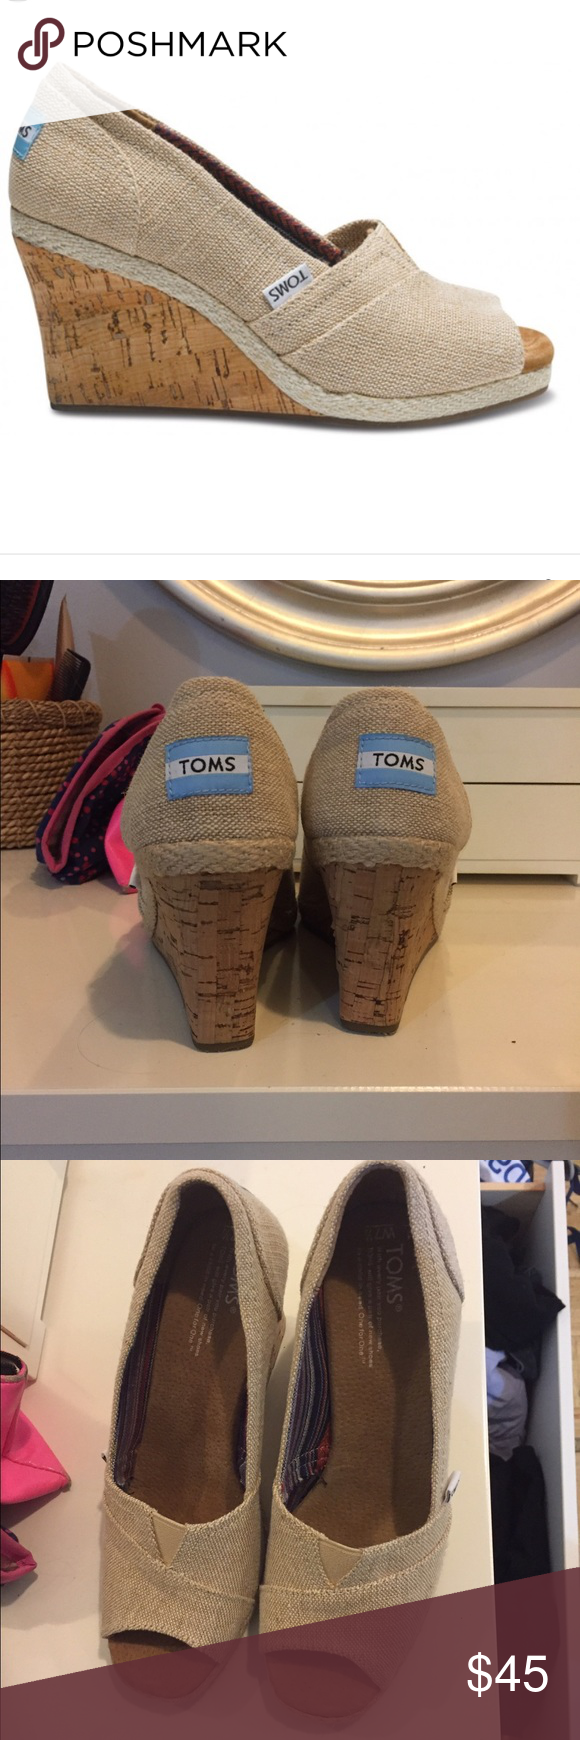 Toms Amery wedge in natural linen Never worn! Comes in box! TOMS Shoes Wedges